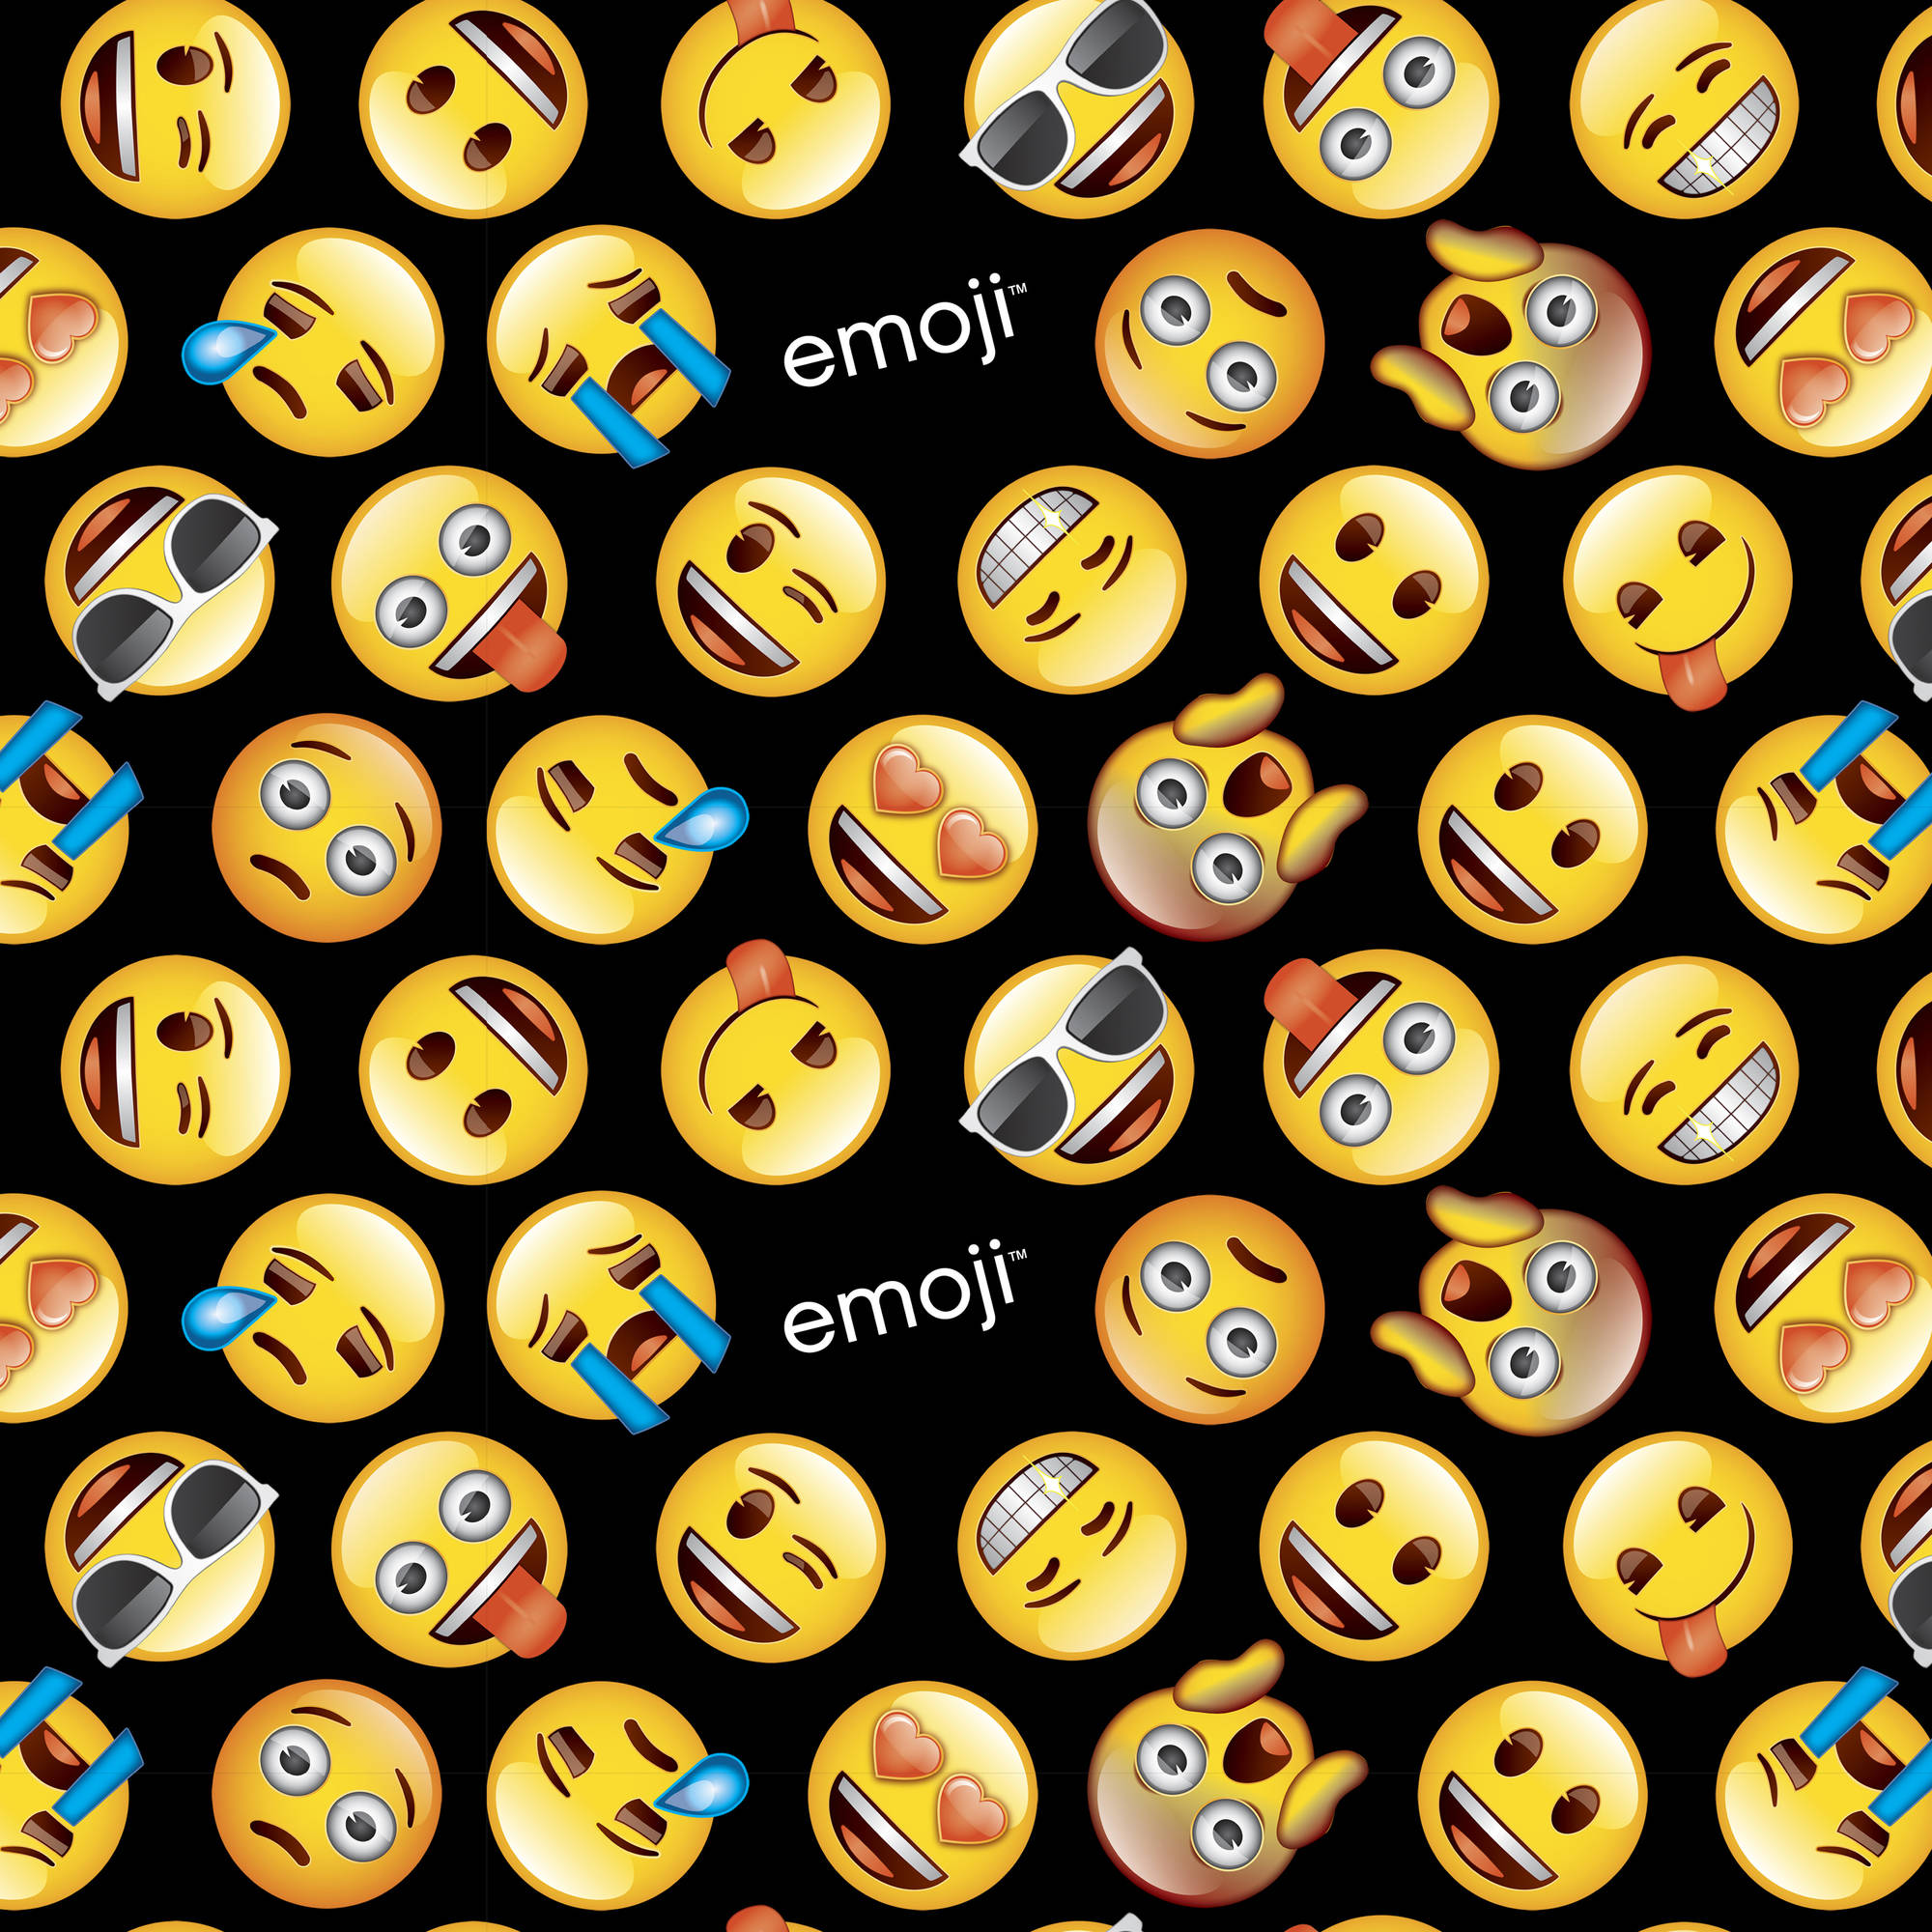 "Classic Emoji Cotton Fabric By The Yard, 44/45"" W, Black/Yellow"